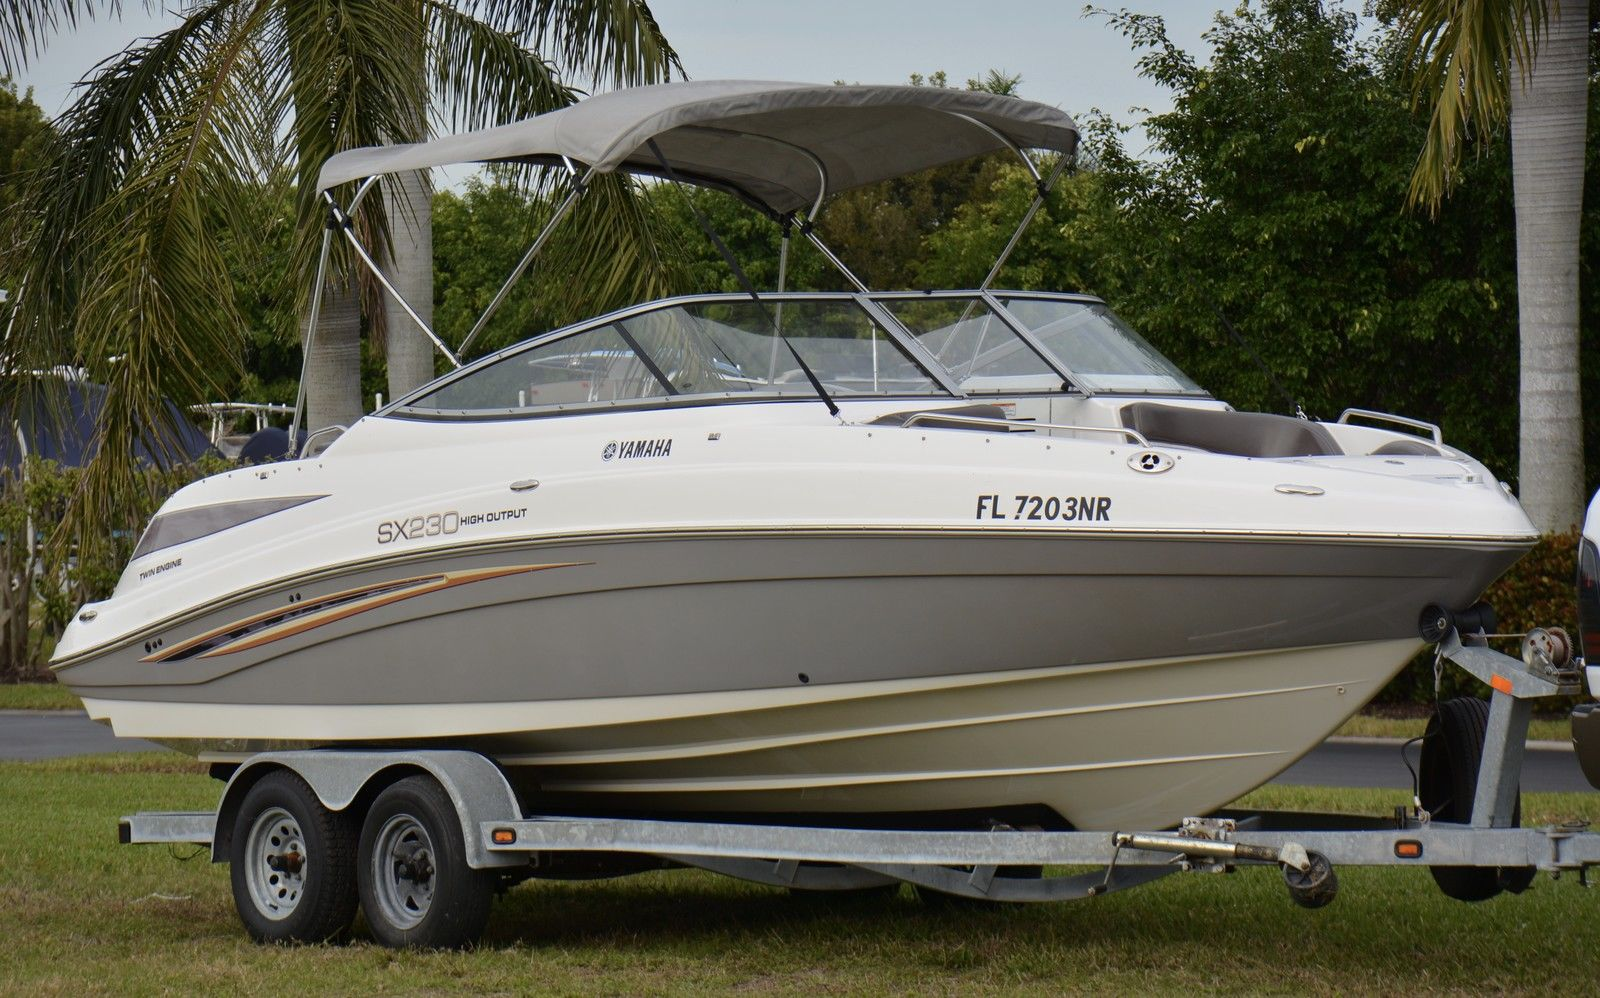 Yamaha SX230 2007 for sale for $19,995 - Boats-from-USA.com